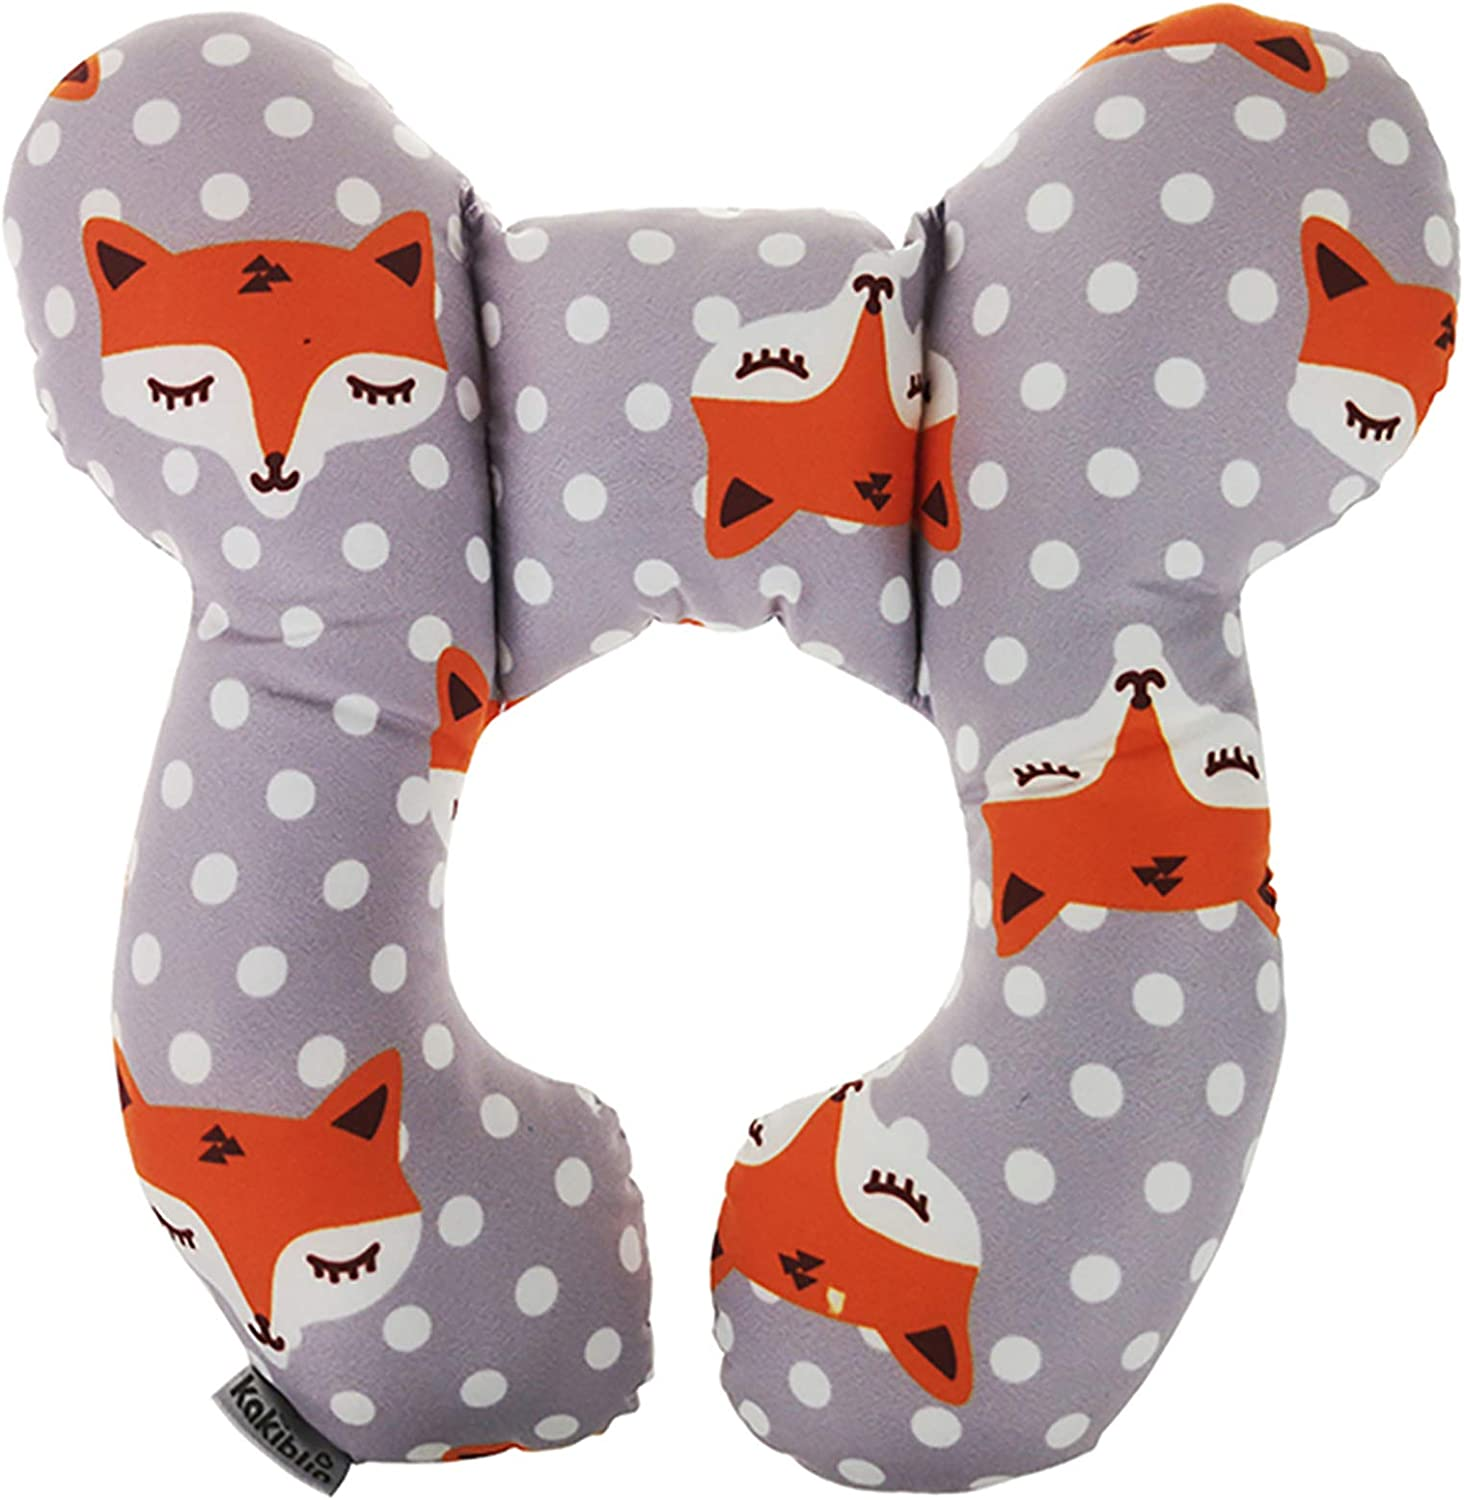 kekafu Baby Travel Pillow, Infant Head and Neck Support Pillow for Car Seat, Pushchair, for 0-1 Years Old Baby